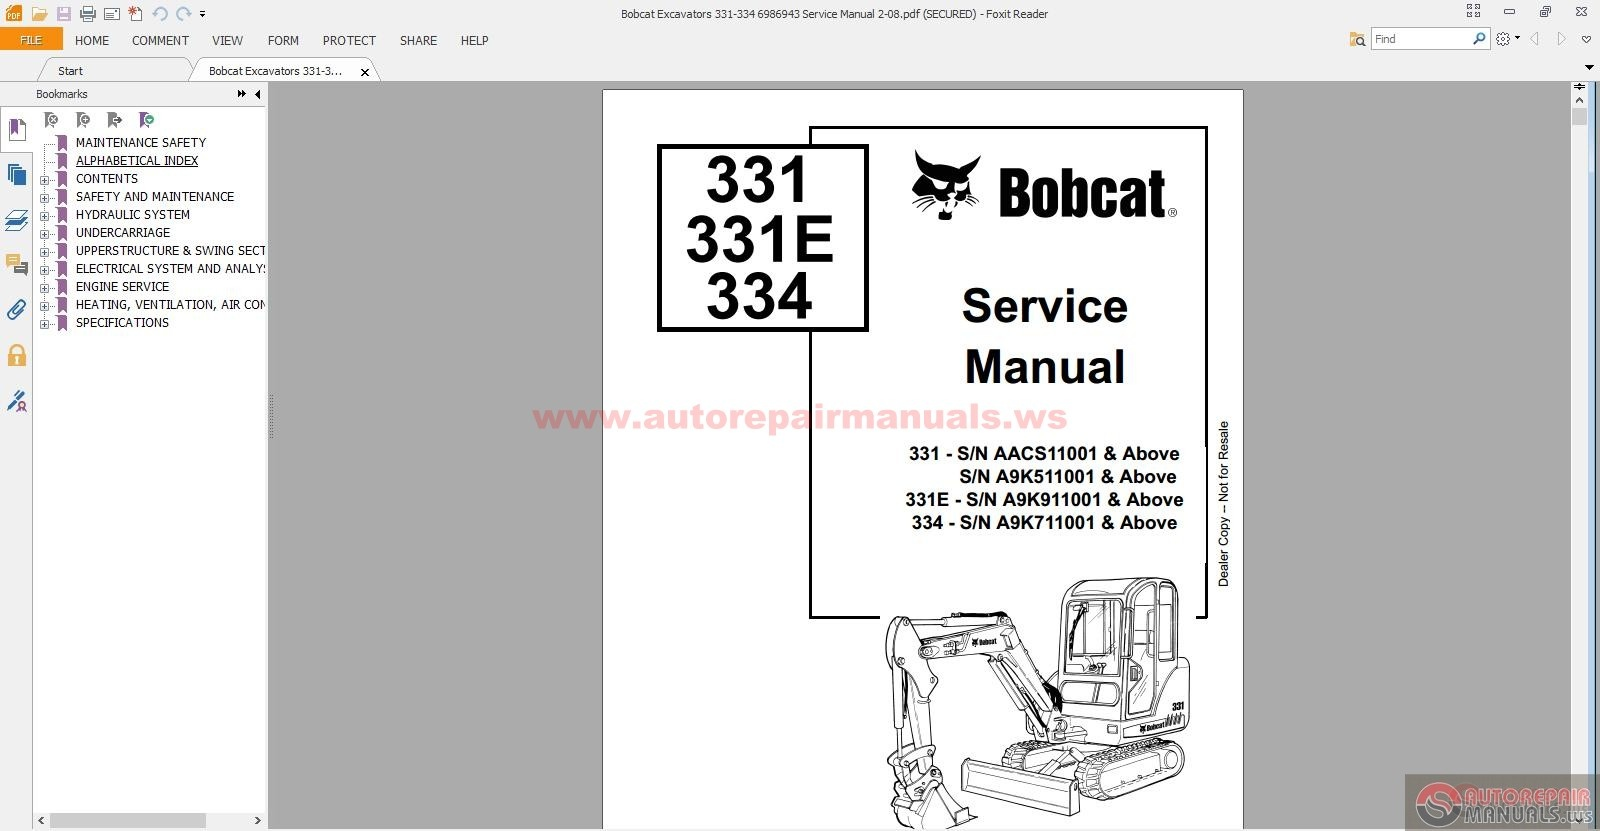 bobcat excavators service manual auto bobcat excavators 331 334 6986943 service manual 2 08 size 43 2mb language english type pdf pages 848